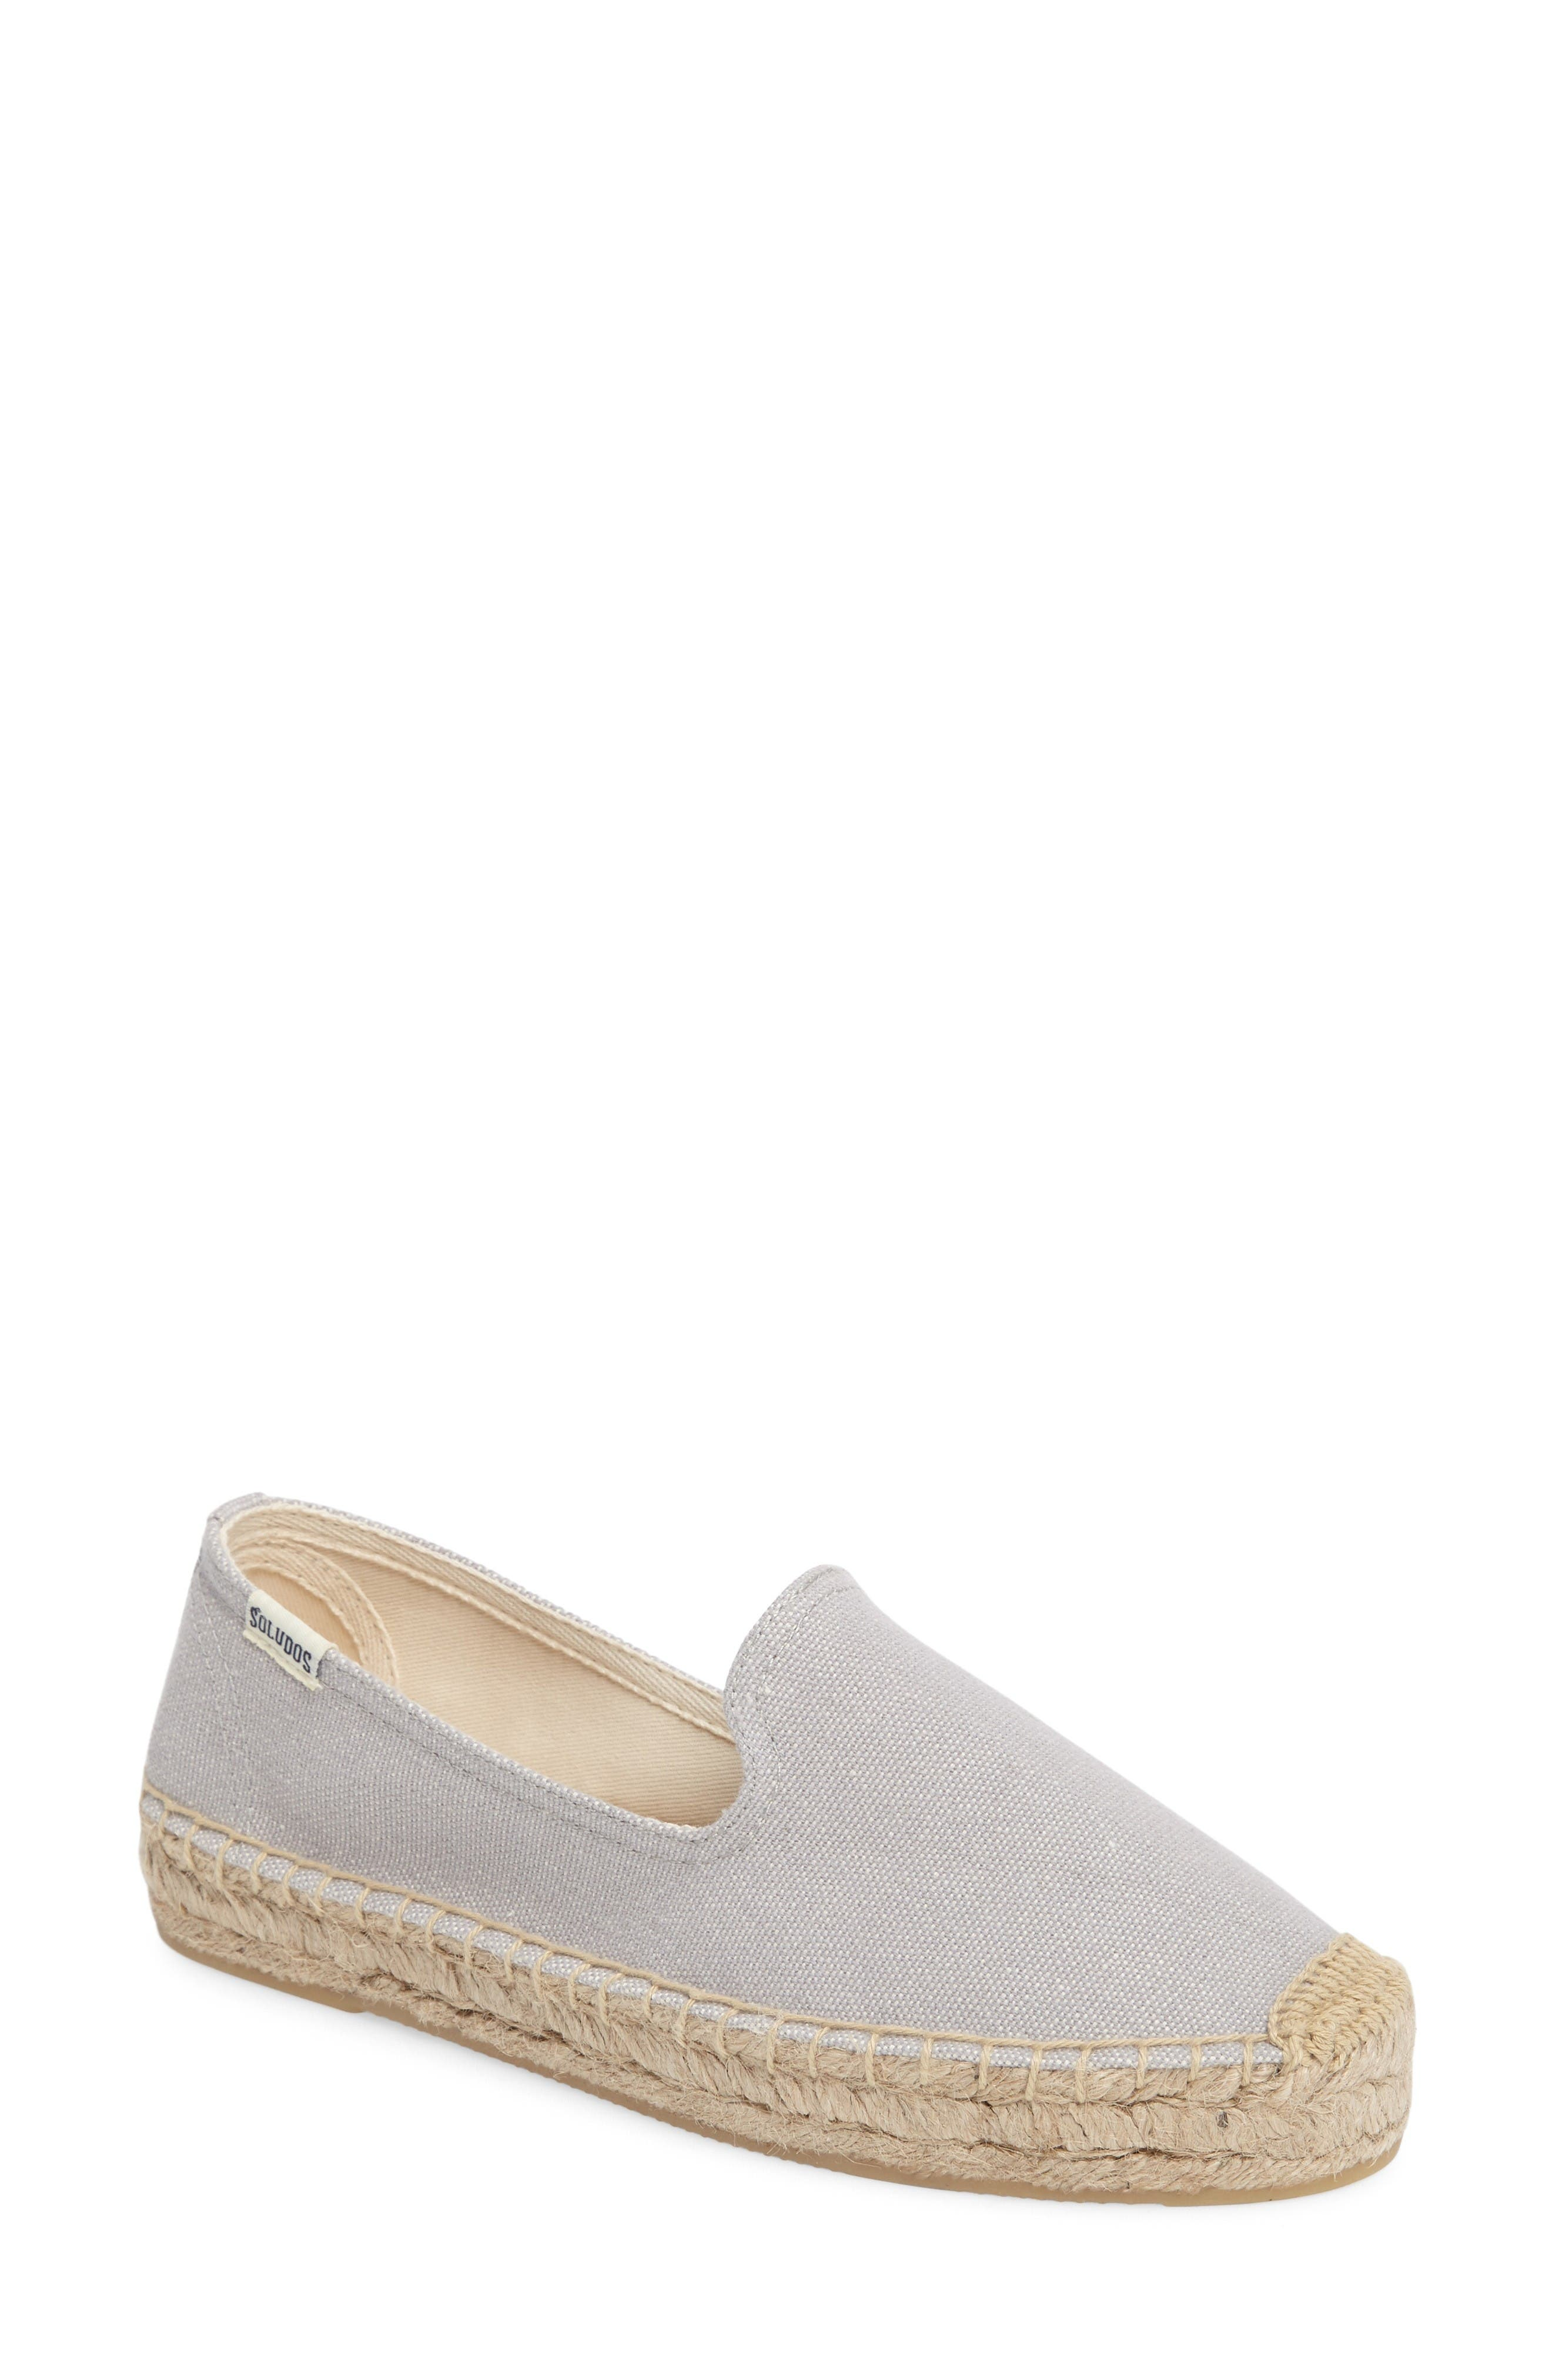 Main Image - Soludos Espadrille Loafer (Women)